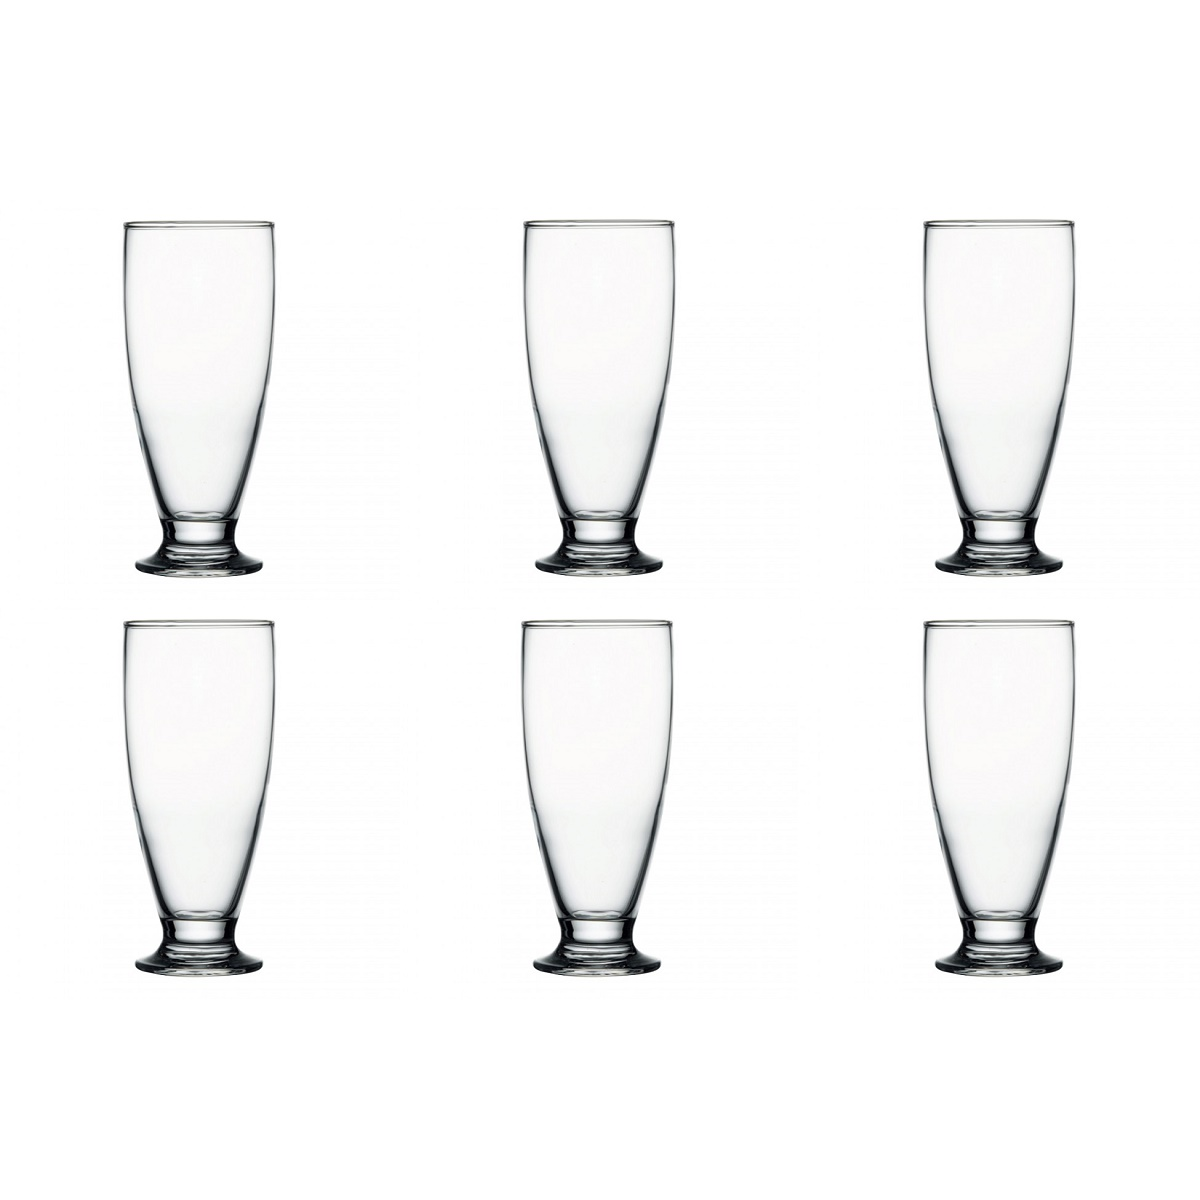 6 Cardinal Pasabahce Footed Highball Pilsner Cocktail Glasses 7.5oz 205929 Set by